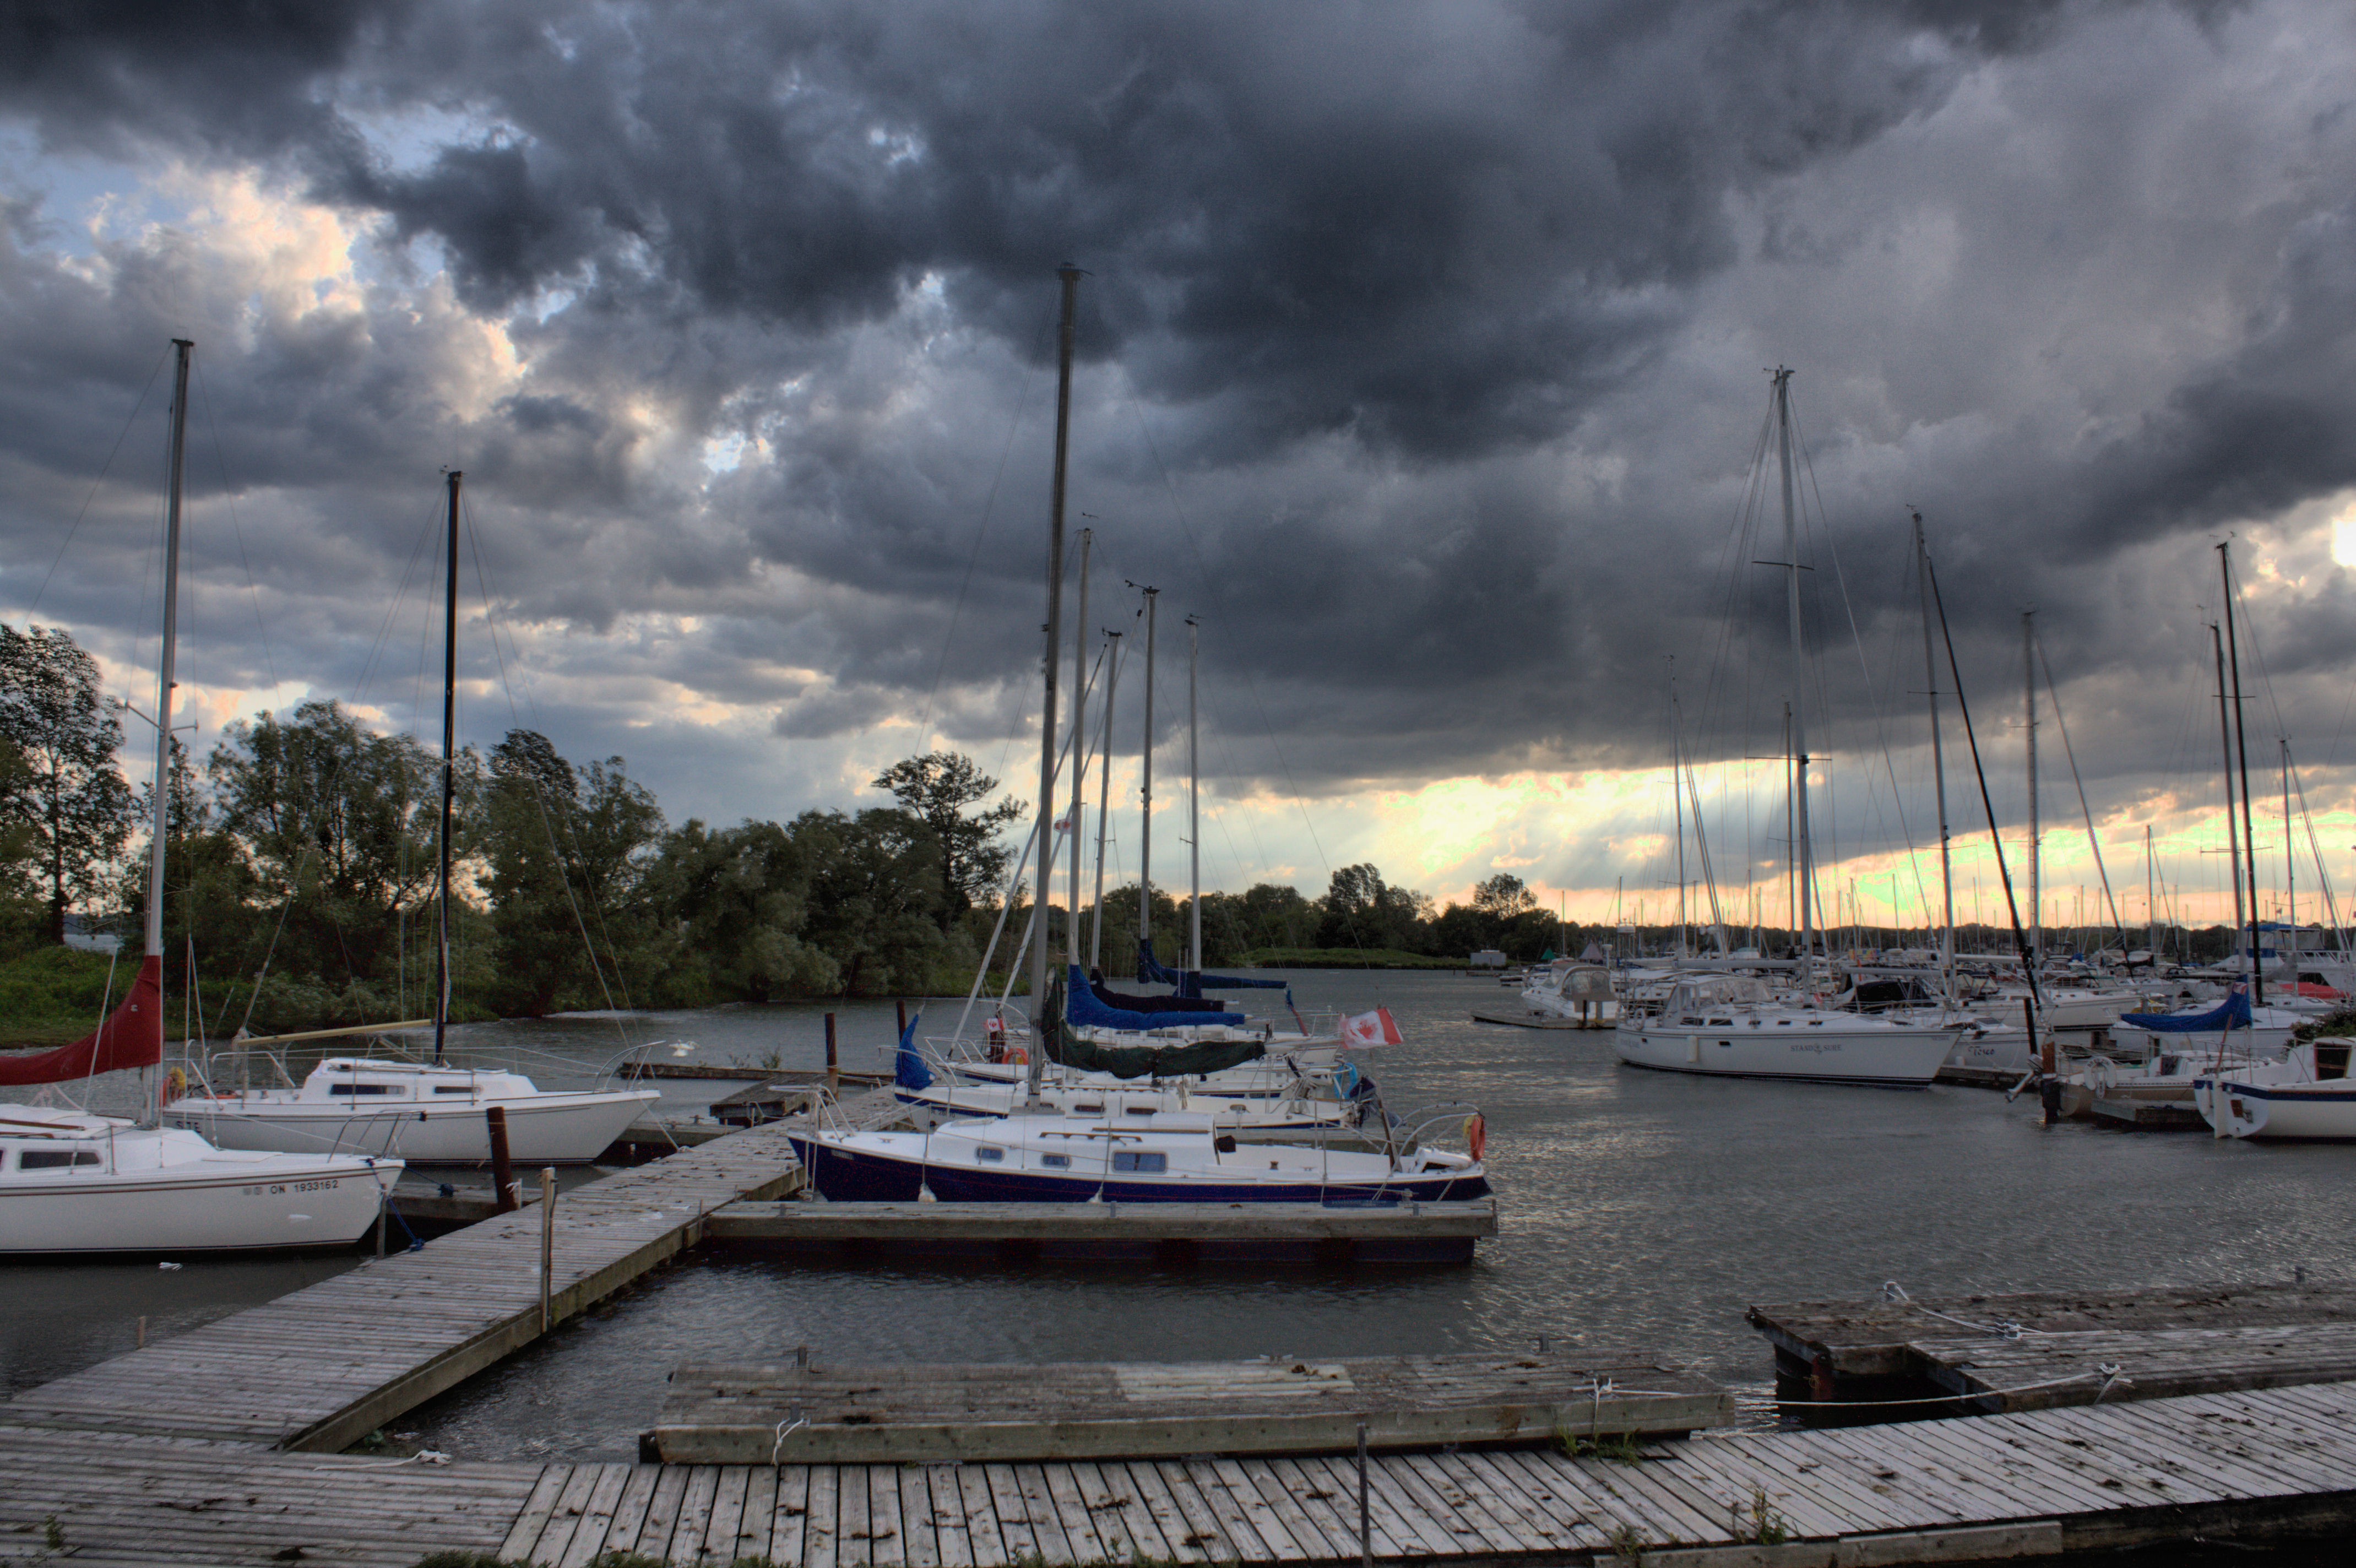 Frenchmans Bay, Storm, Scenic, Vessels, Water, HQ Photo